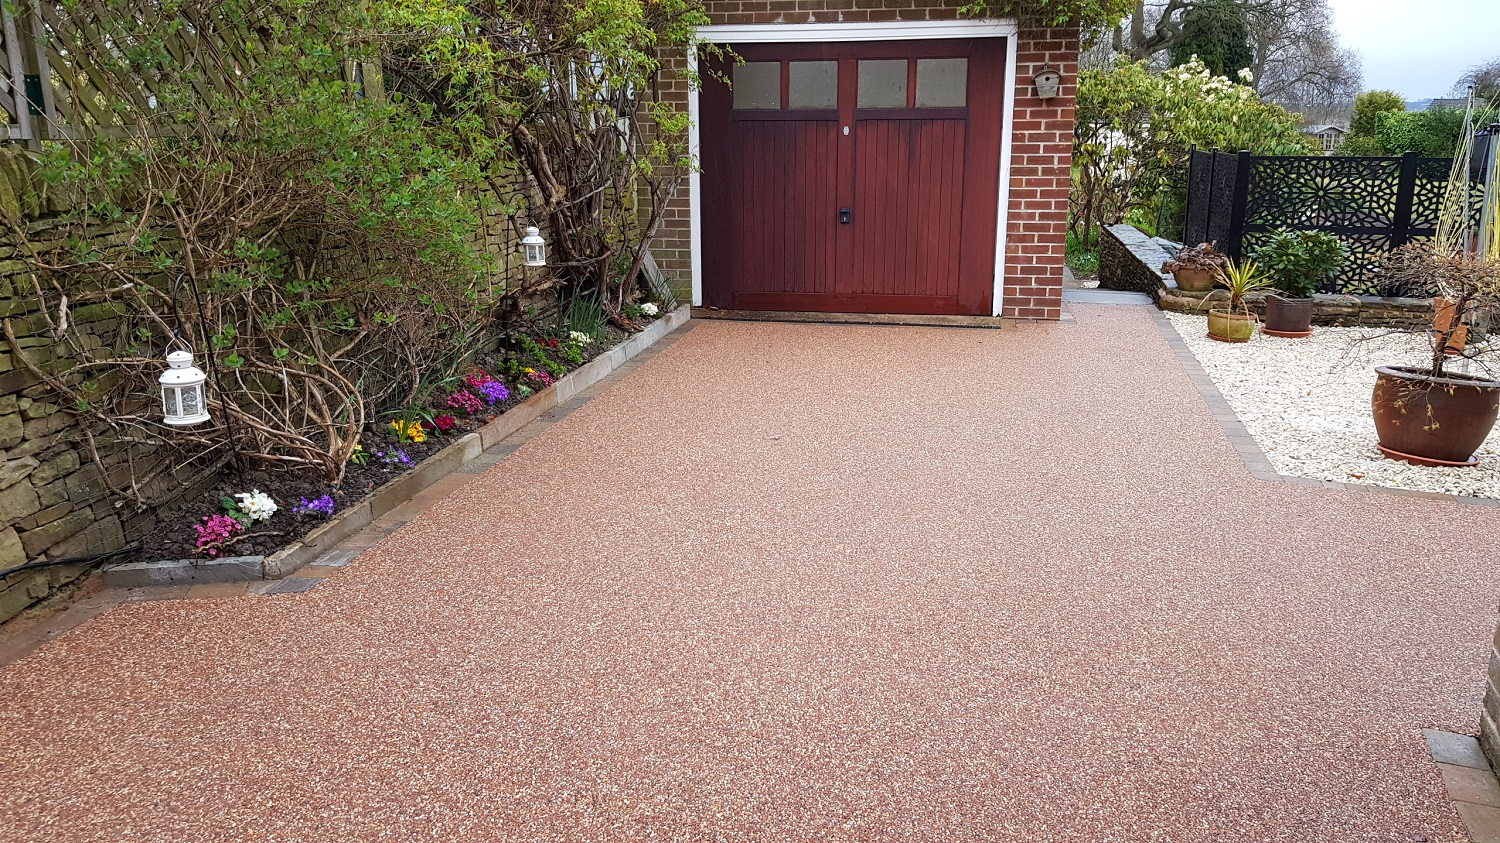 R14 - Chilli Chocolate Mix (2)  Resin Bound Driveway Surfacing at Brookside  in Chesterfield with Bl